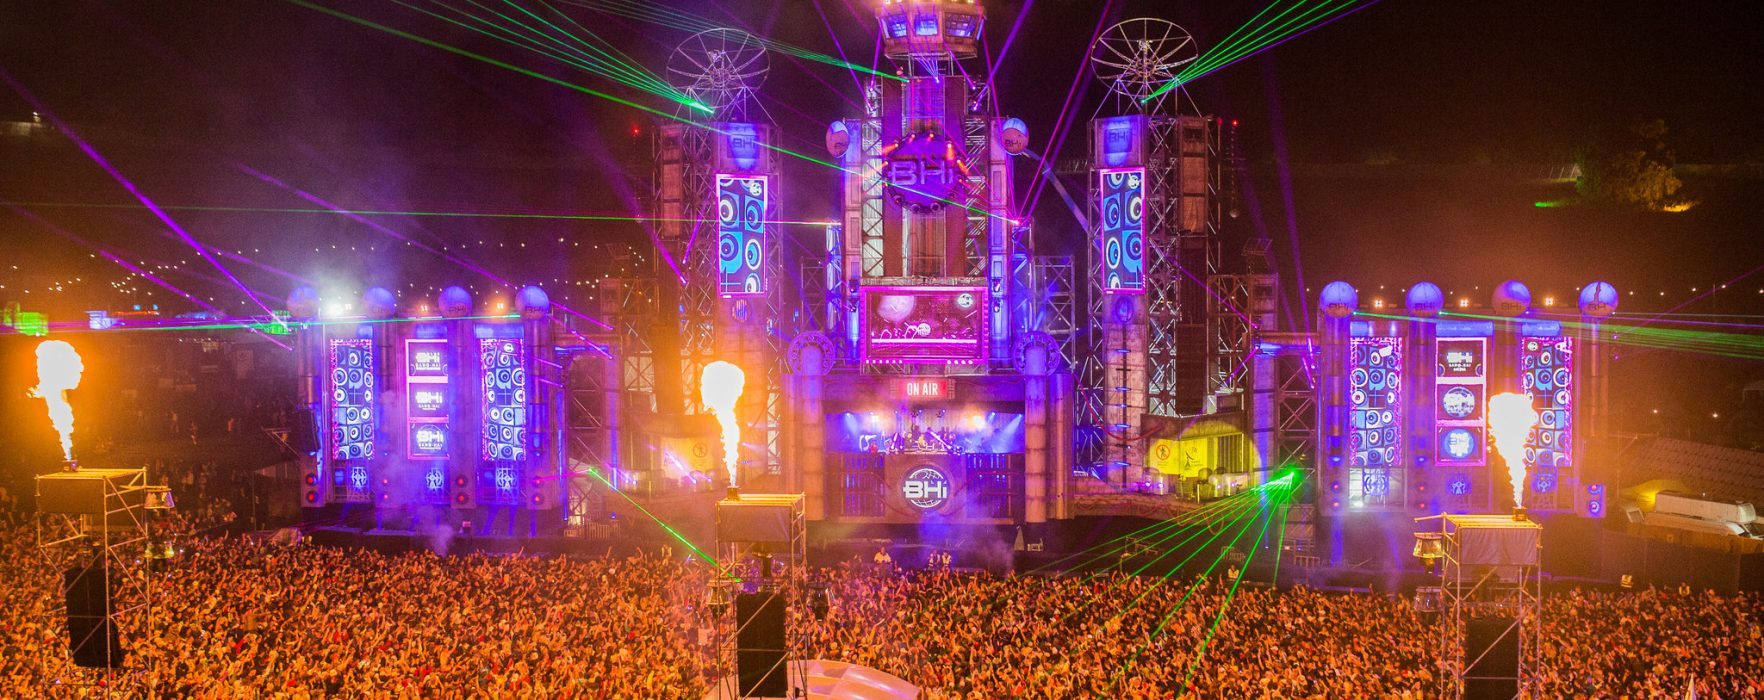 Die Antwoord and Gorillaz among Boomtown's star-studded line-up